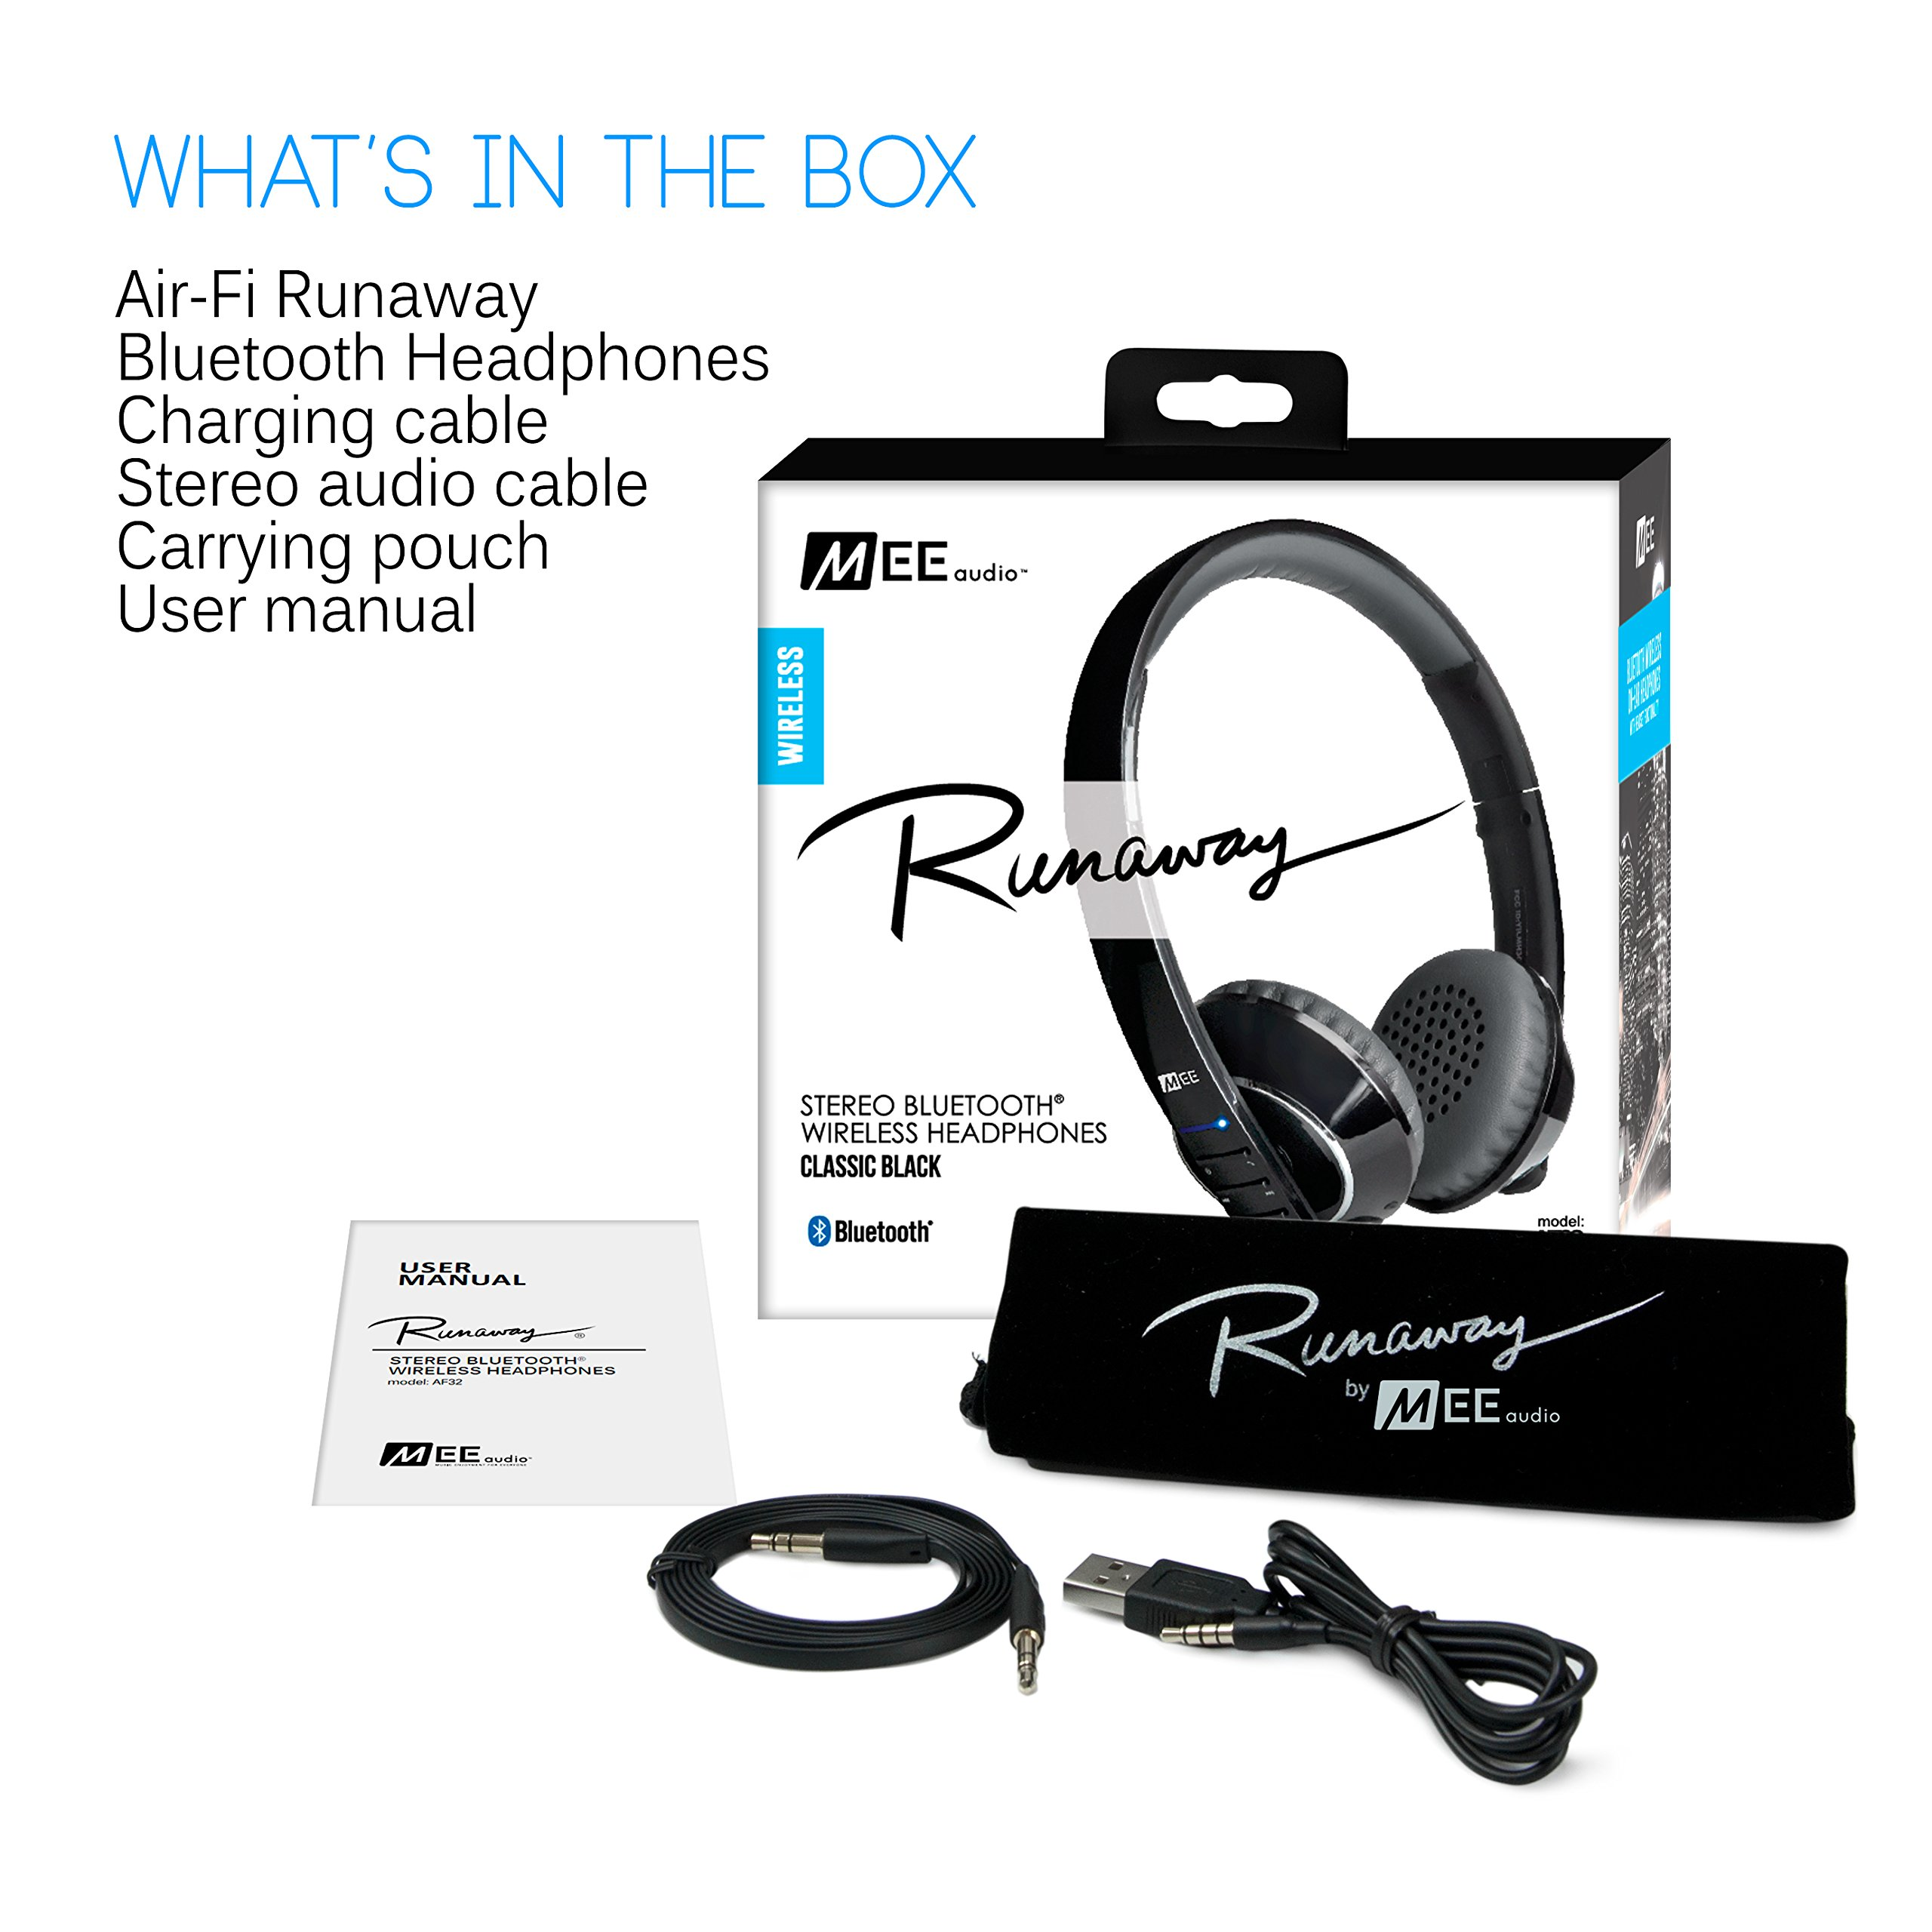 MEE audio Runaway 4.0 Bluetooth Stereo Wireless + Wired Headphones with Microphone (Black) by MEE audio (Image #7)